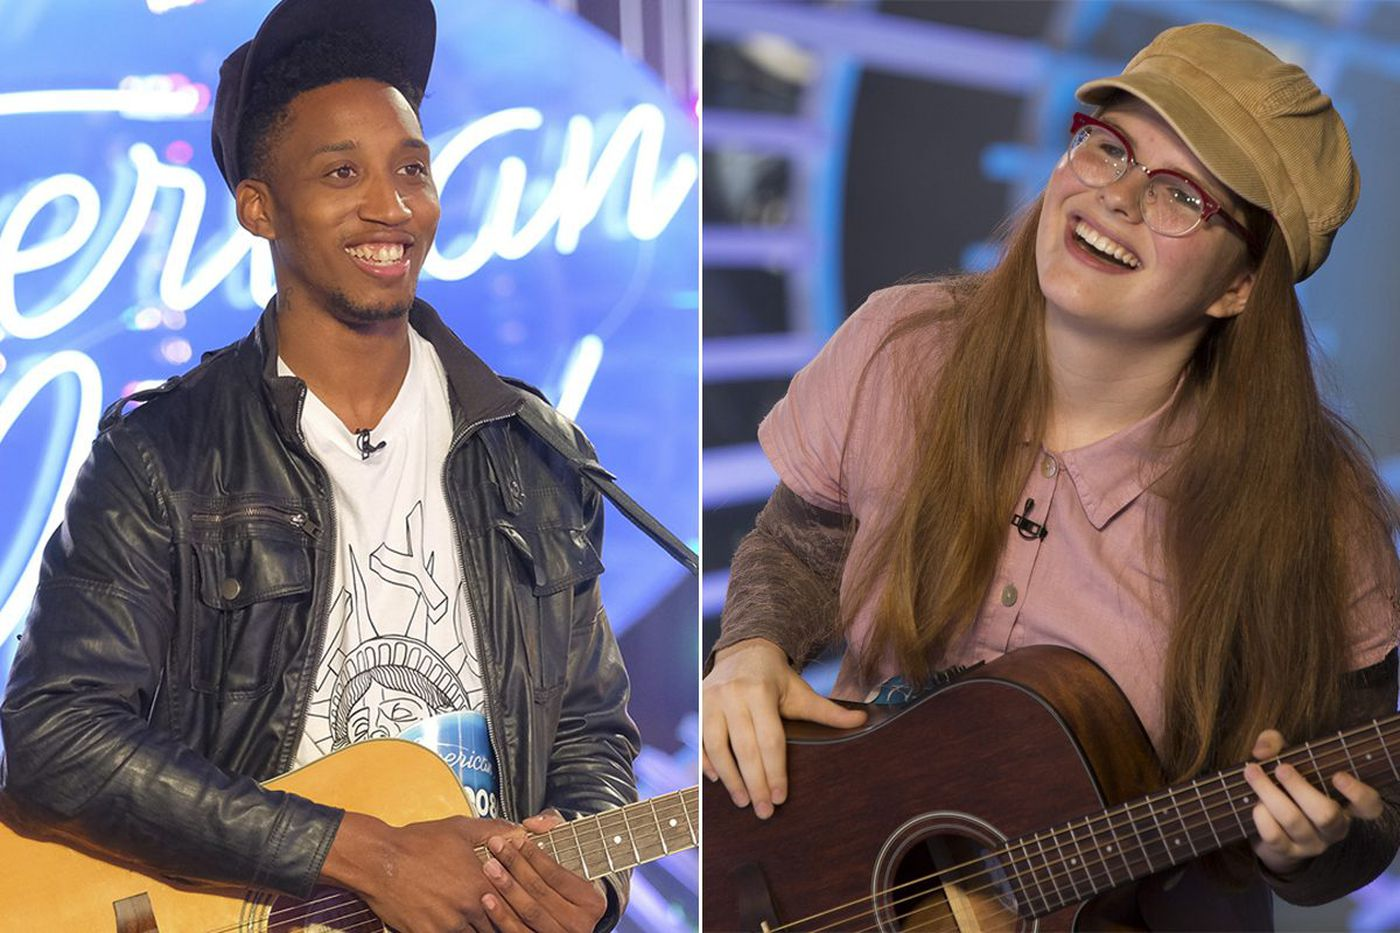 Two Philly-area contestants move forward on 'American Idol'